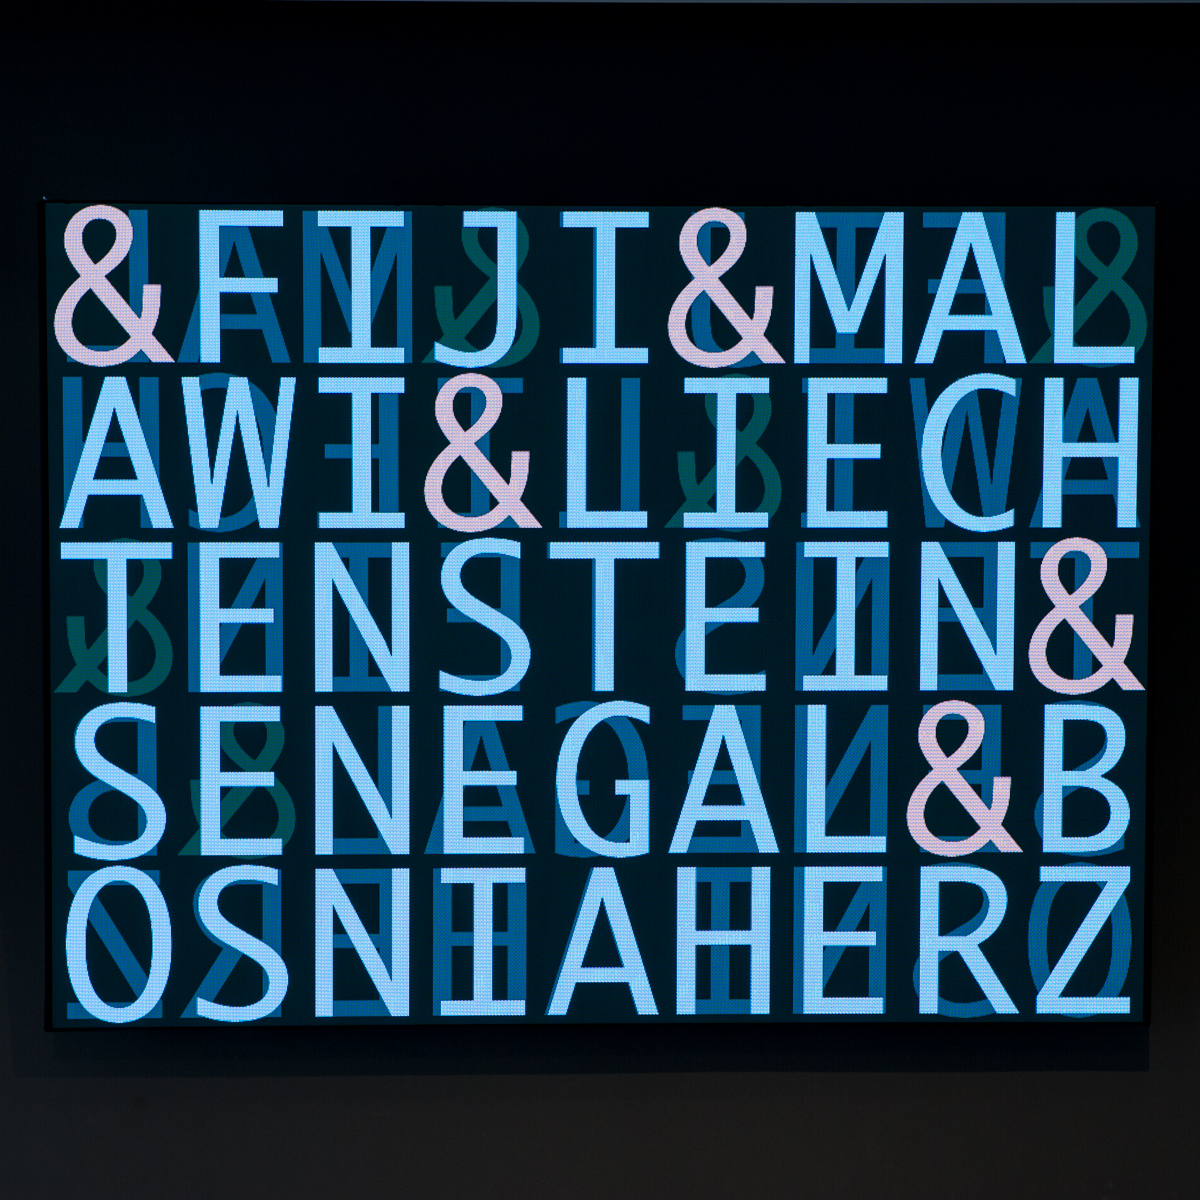 Colour photo of a digitial screen with large blue letters spelling out FIJI & MALAWI & LIECHTENSTEIN & SENEGAL & BONSNIA HERZ